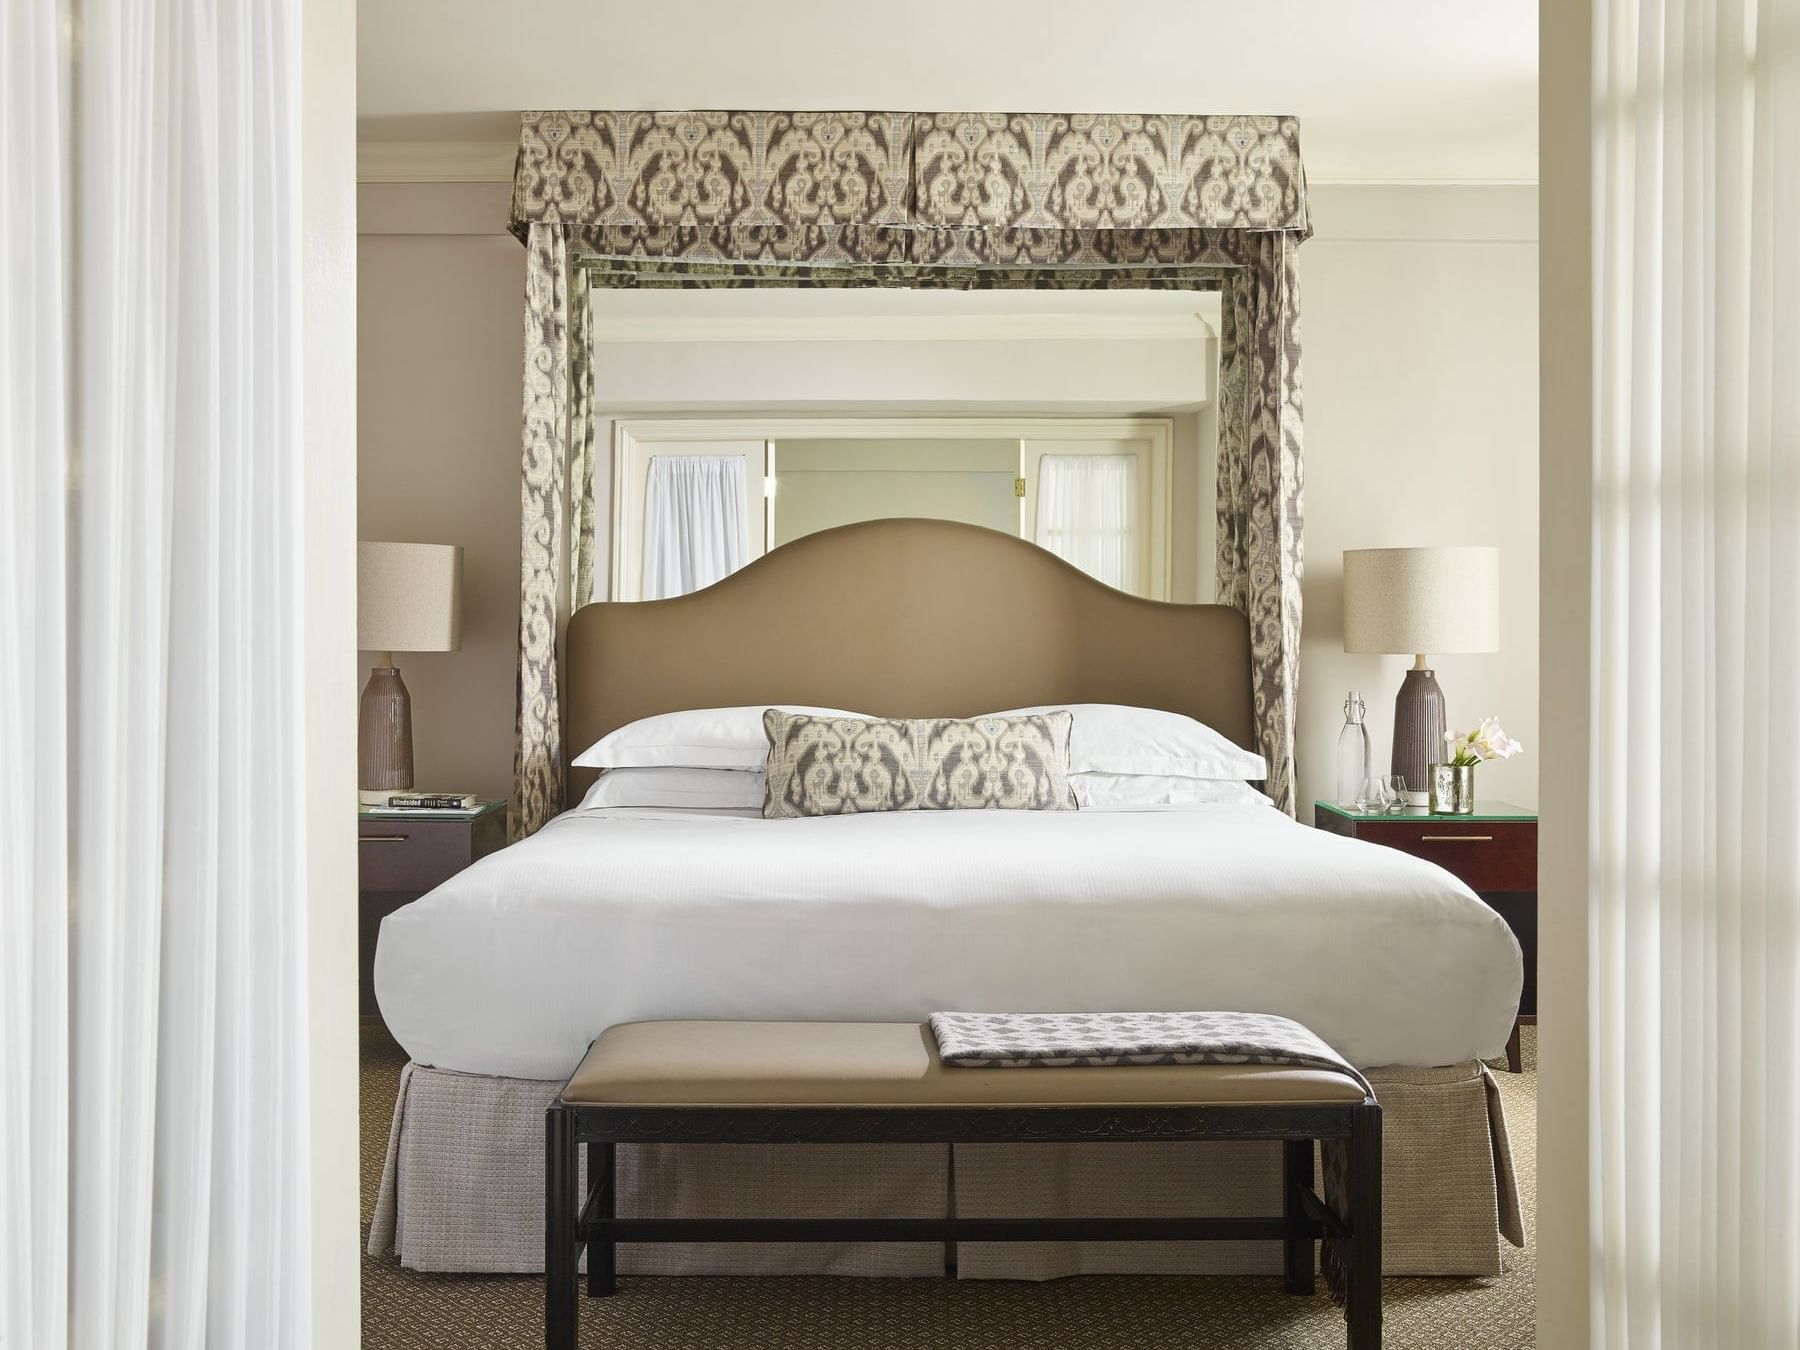 One bedroom suite with one king or queen bed in the bedroom, separated by French doors from a living room.